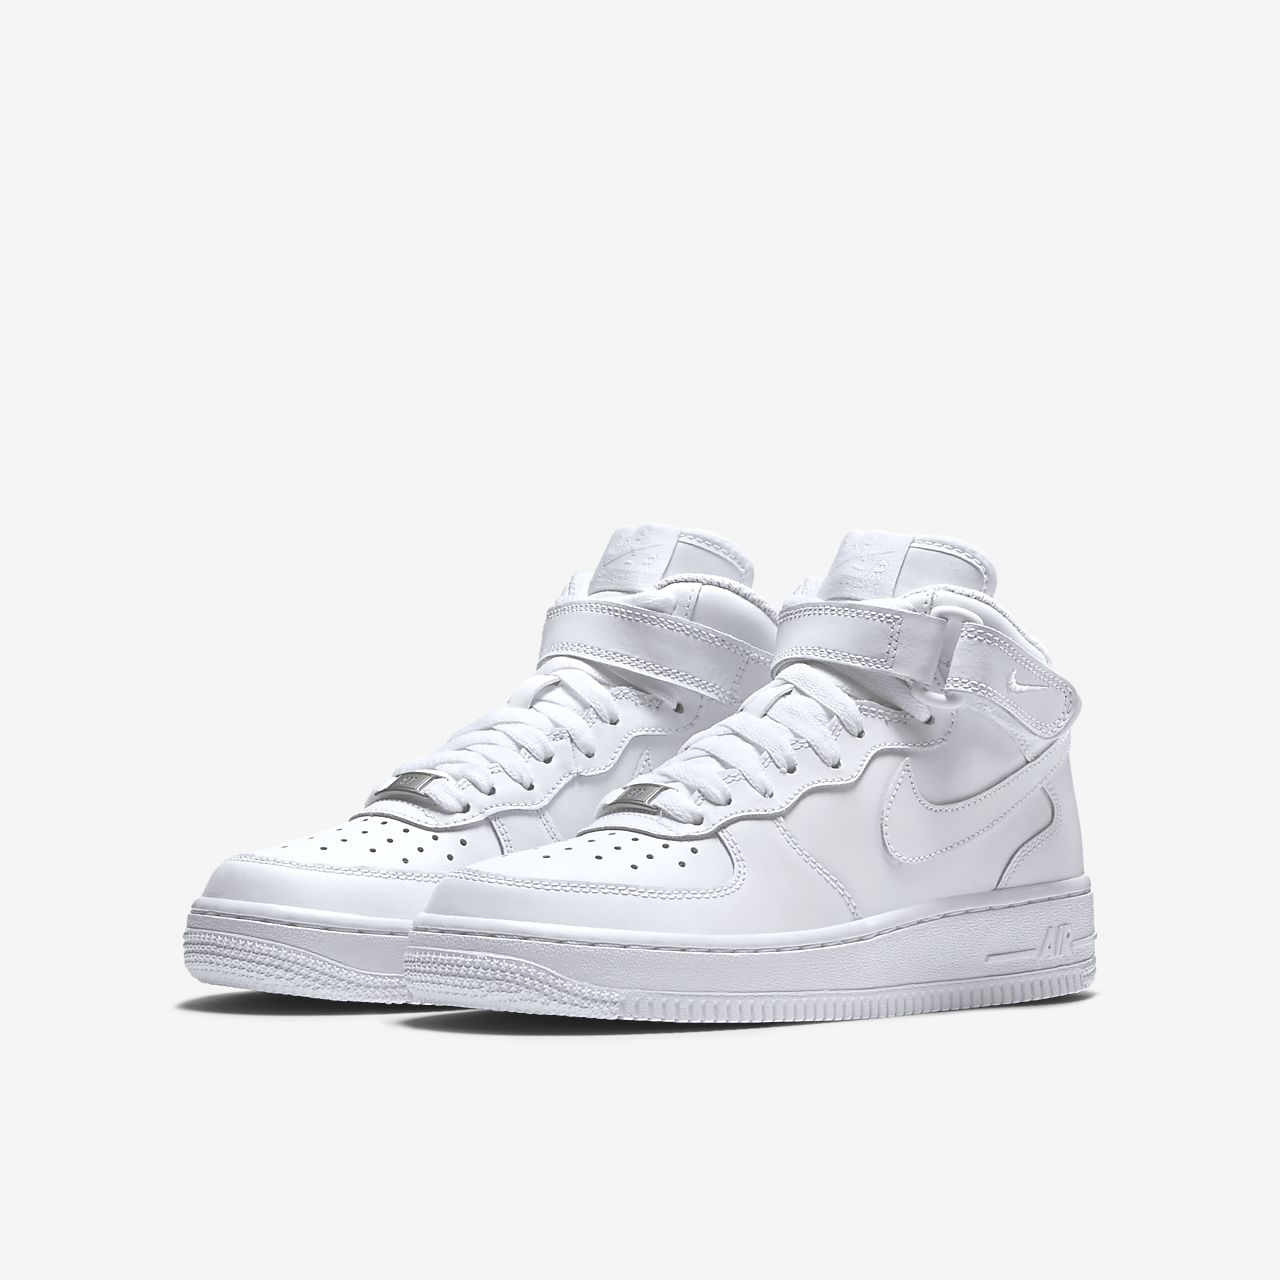 cheap for discount 8e481 2fd86 ... Nike Air Force 1 Mid 06 Kids Shoe